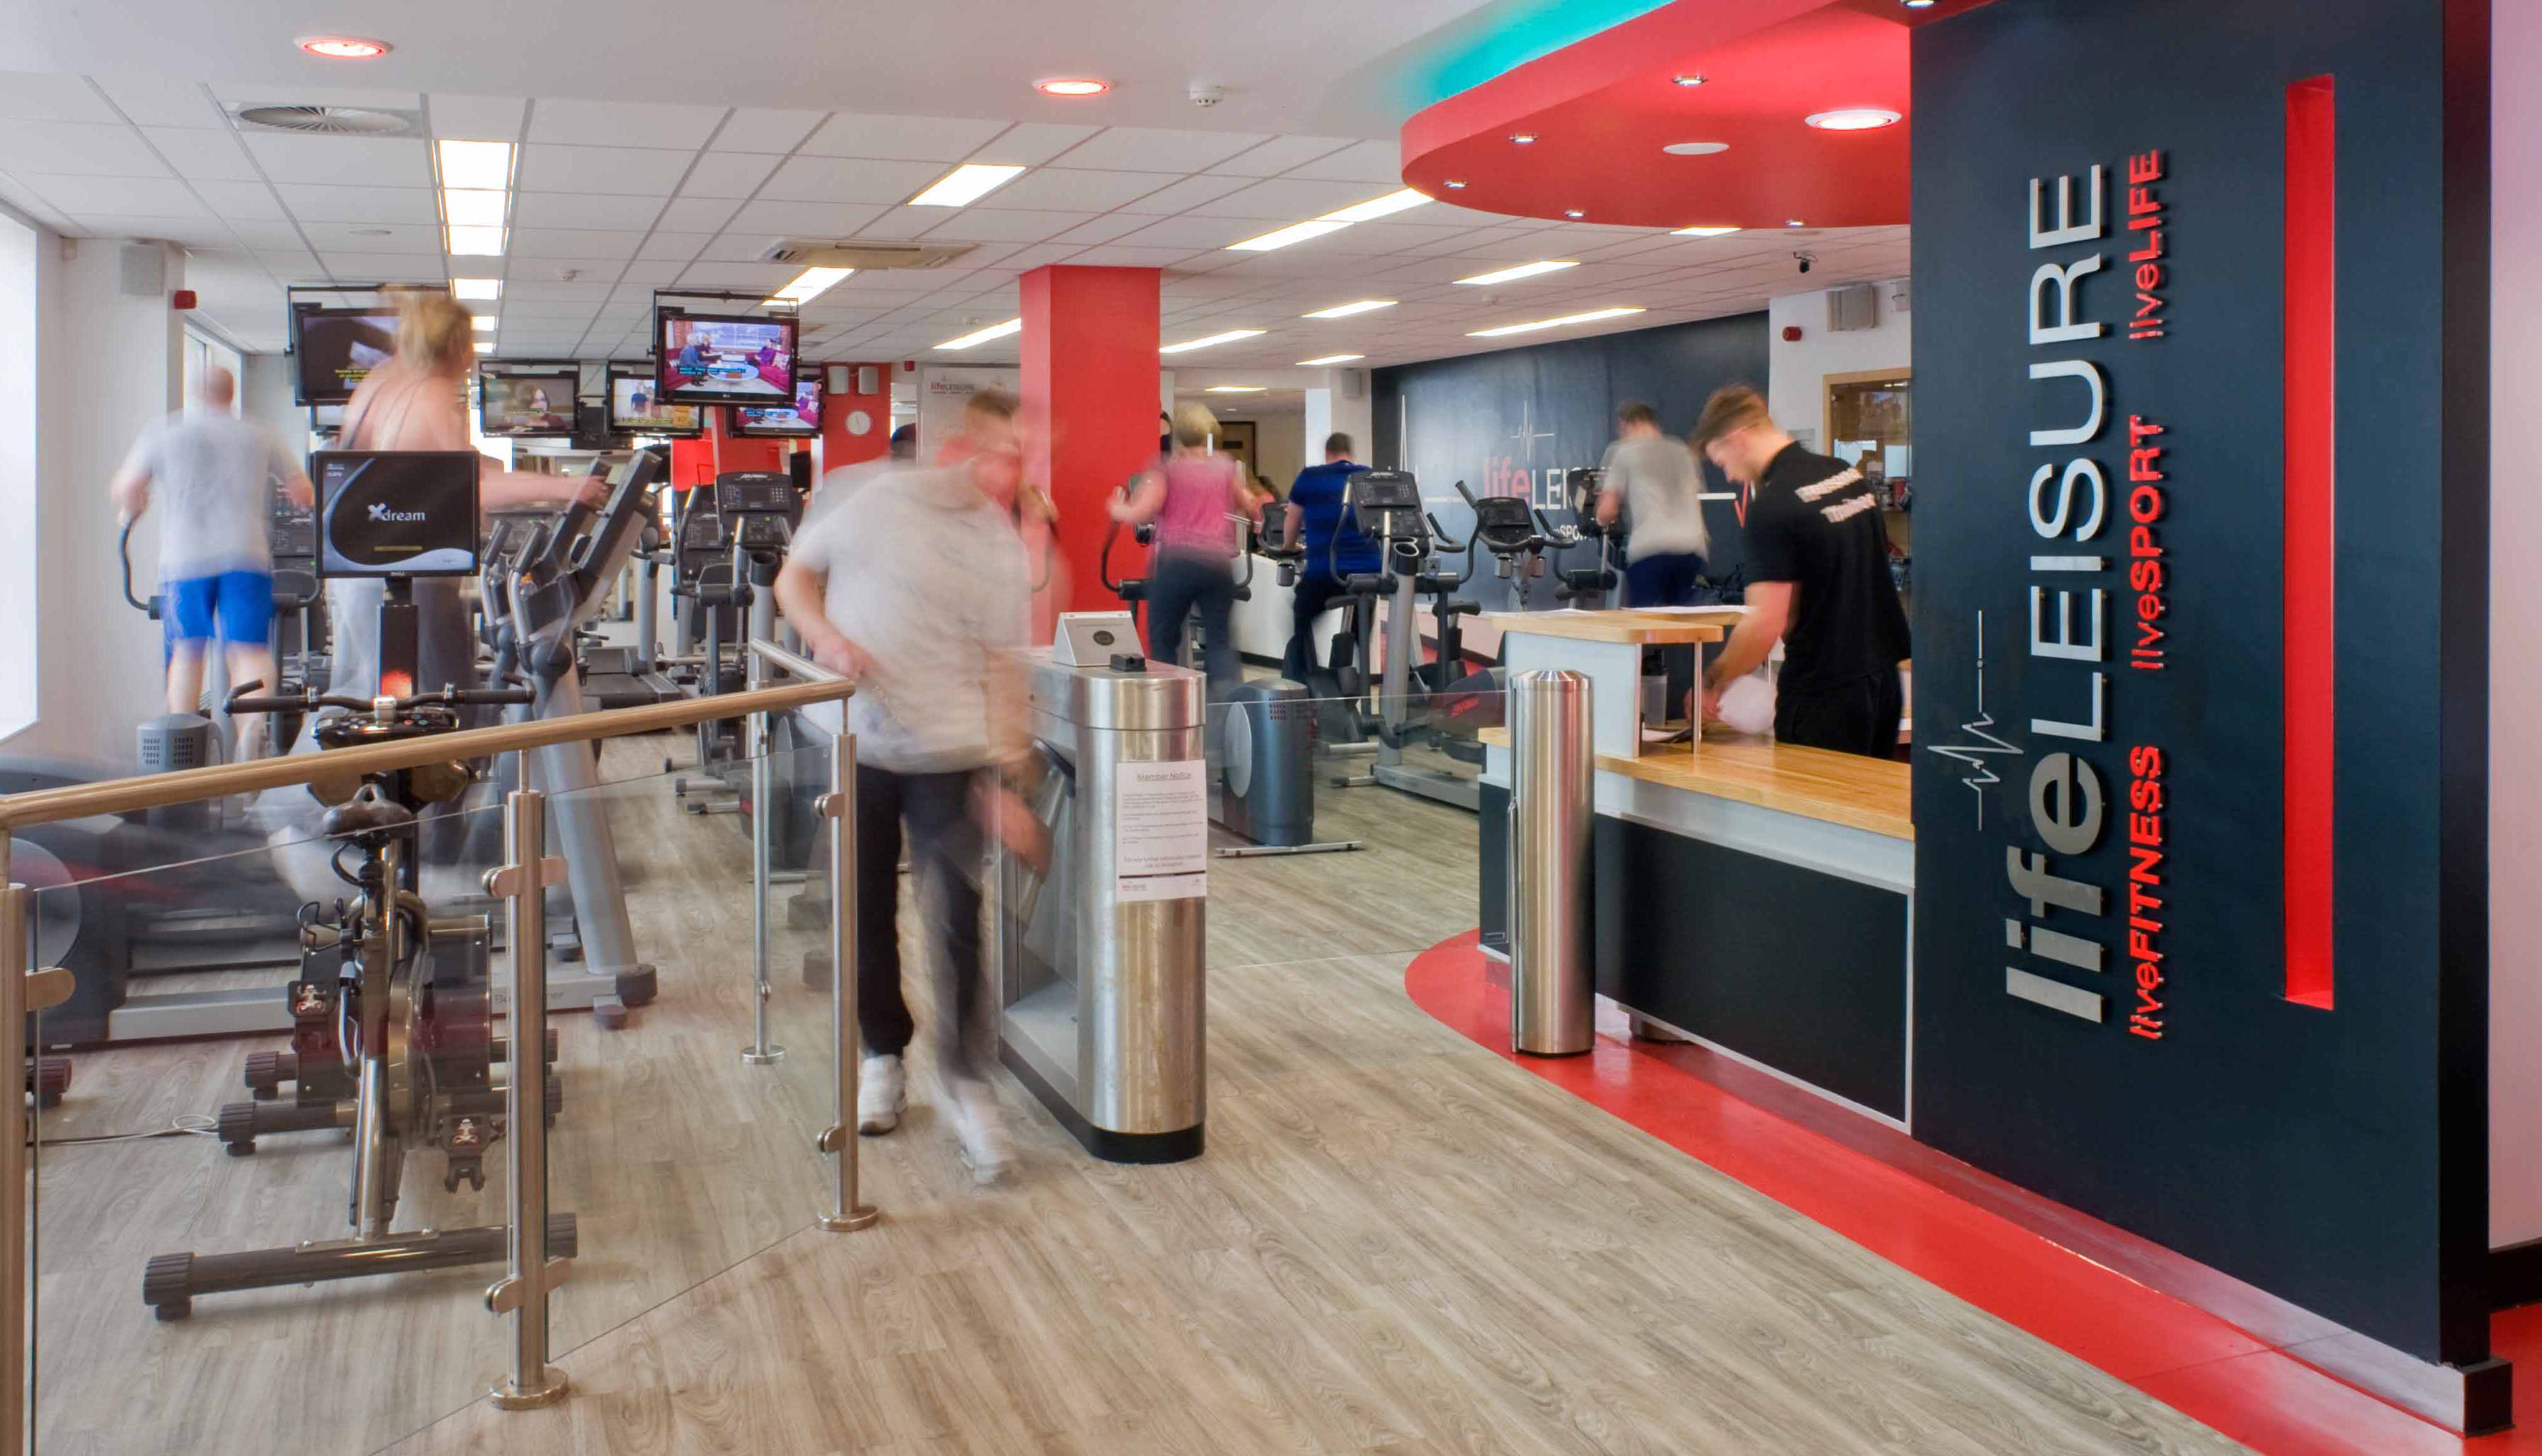 All change at Grand Central: new facilities set to improve fitness access and enjoyment